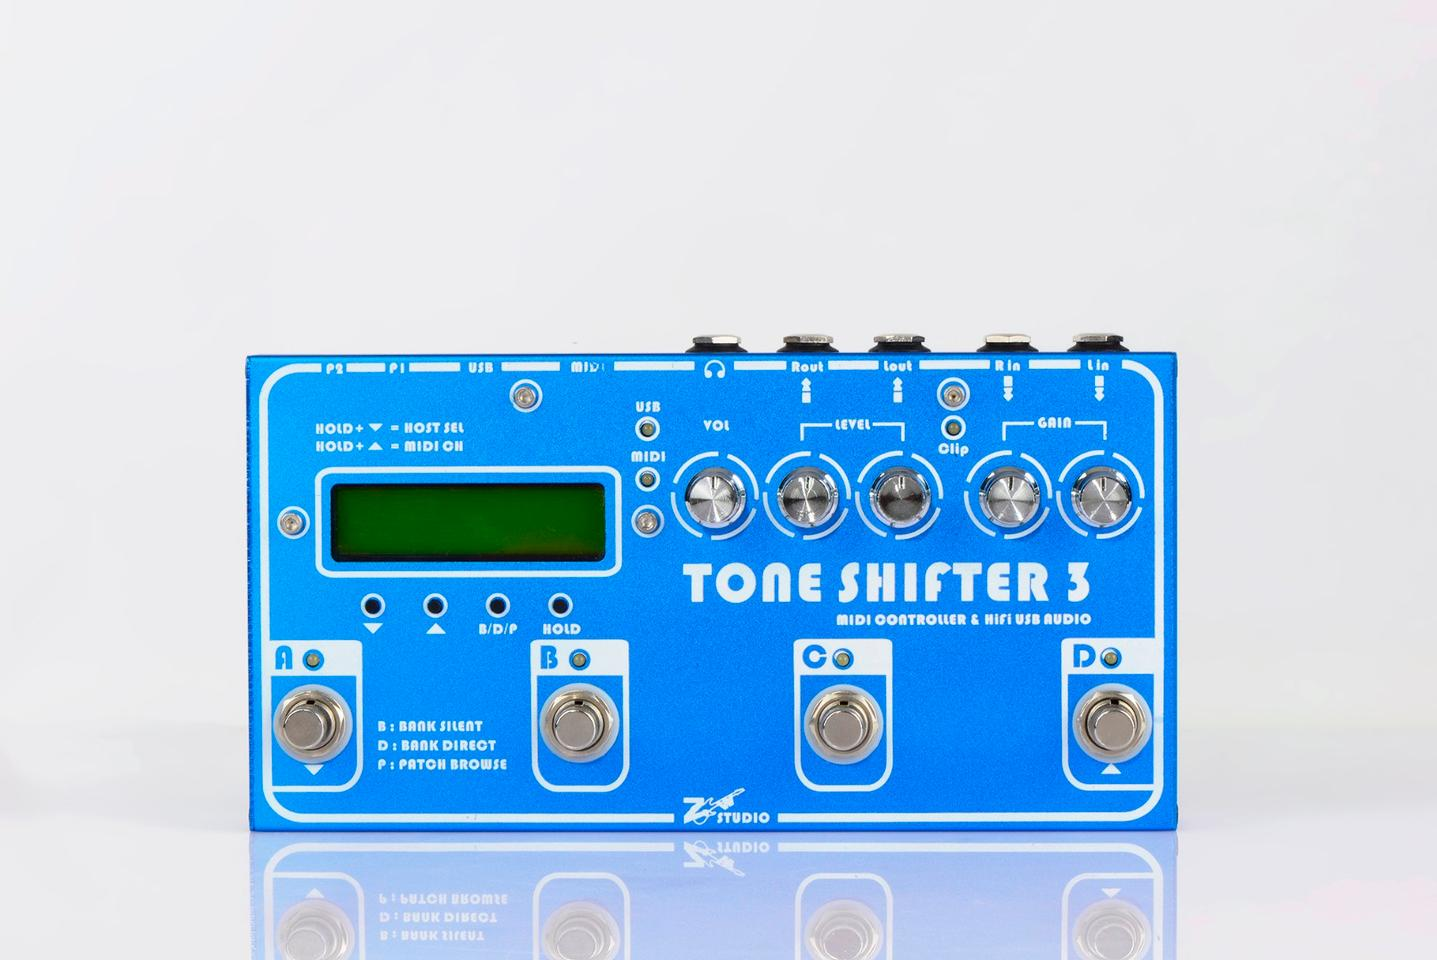 The Tone Shifter 3 has four footsiwtches up top, along with volume, level and gain knobs and a backlit LCD display and LED status lights